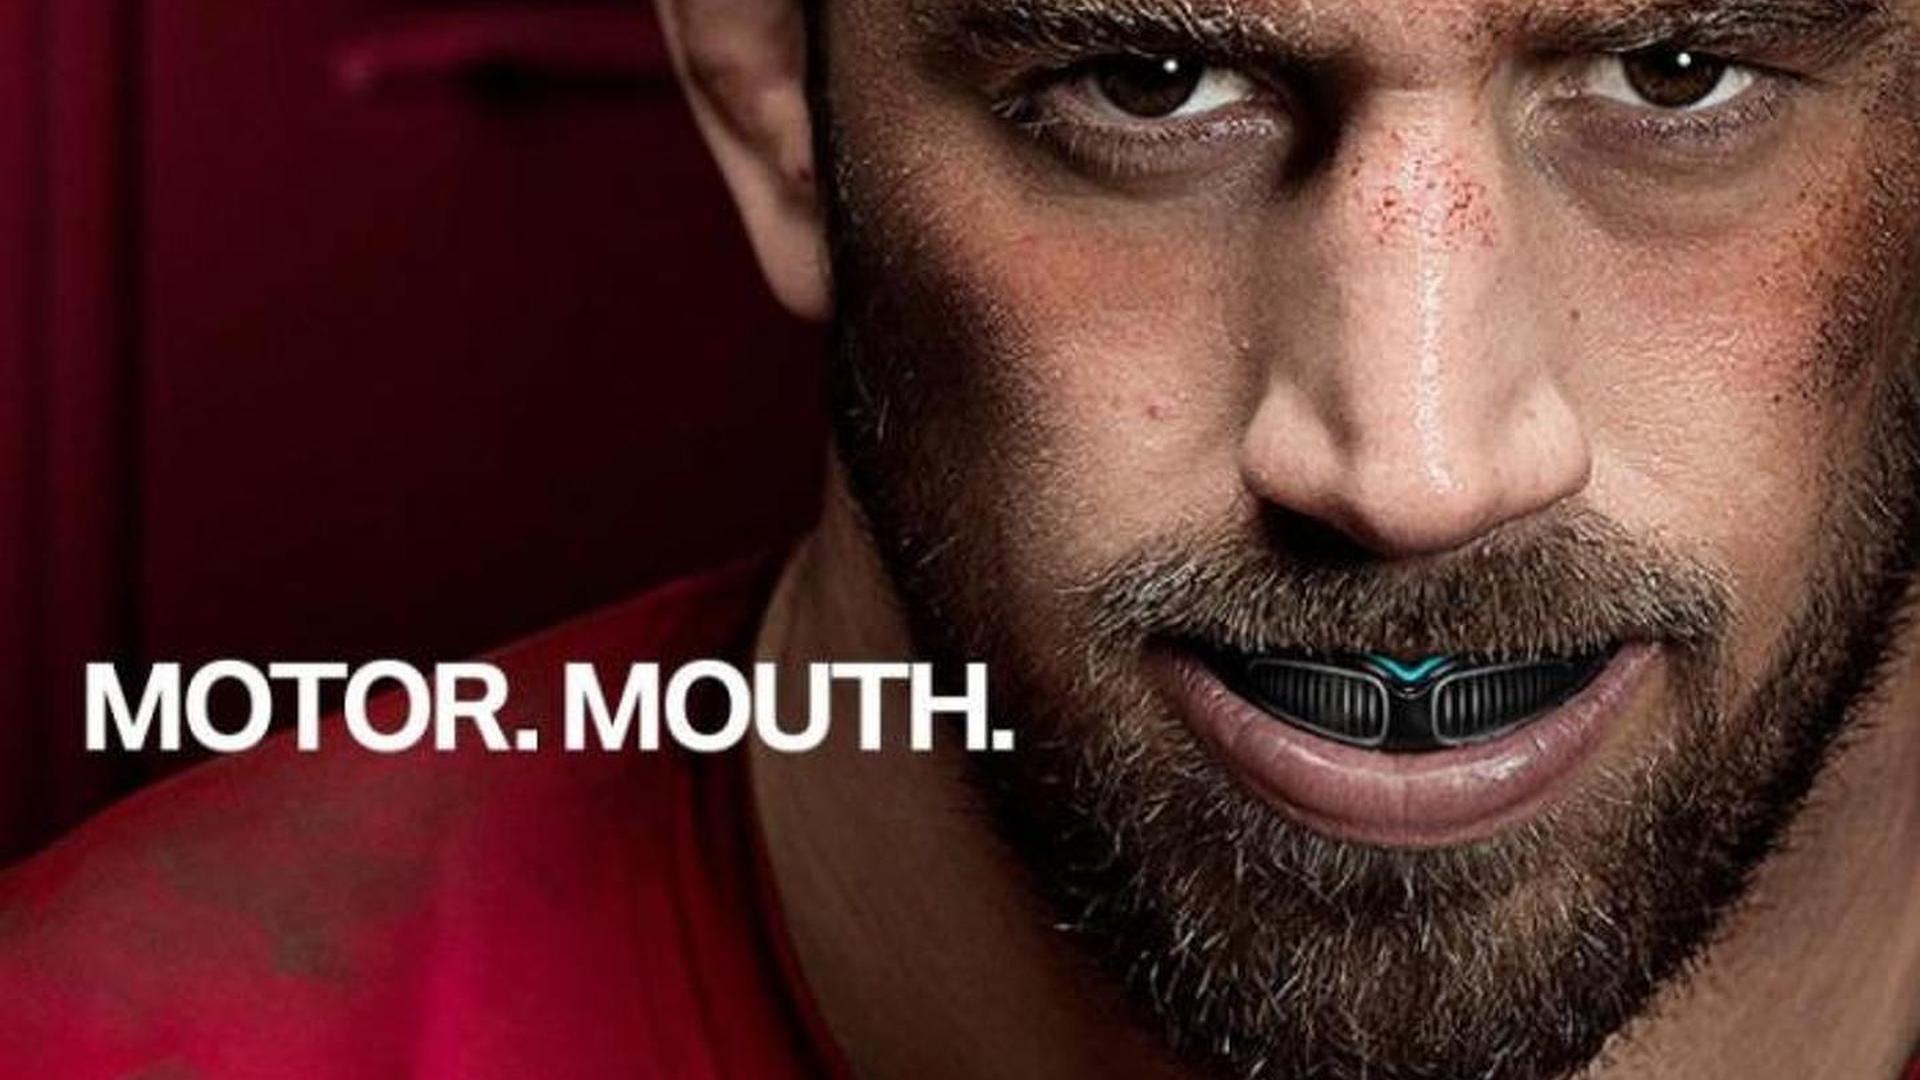 BMW mouthguard is a weird April Fools' Day joke [video]